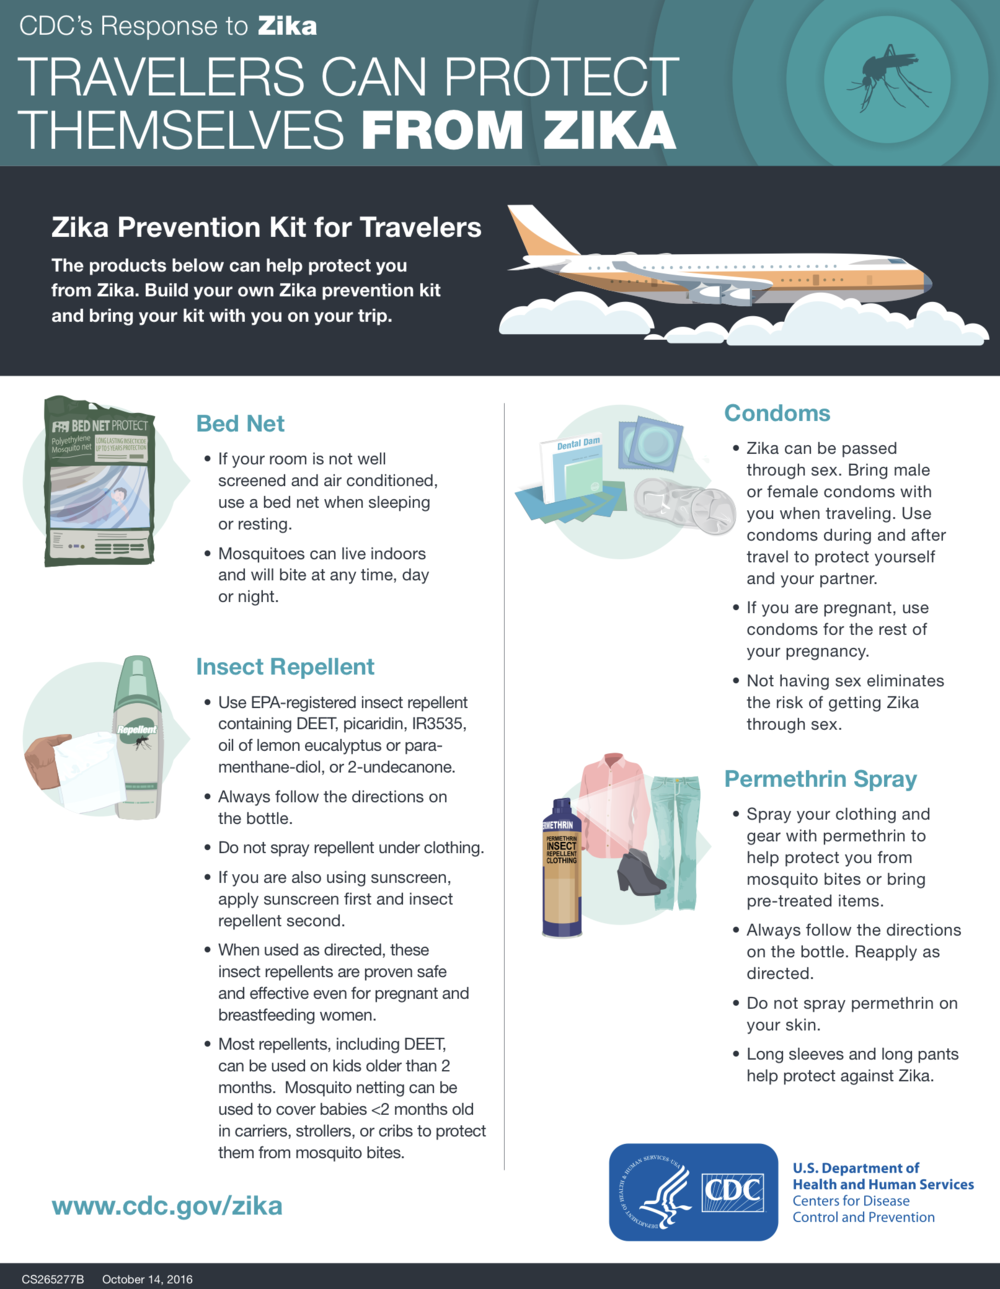 Zika Prevention Kit for Travelers